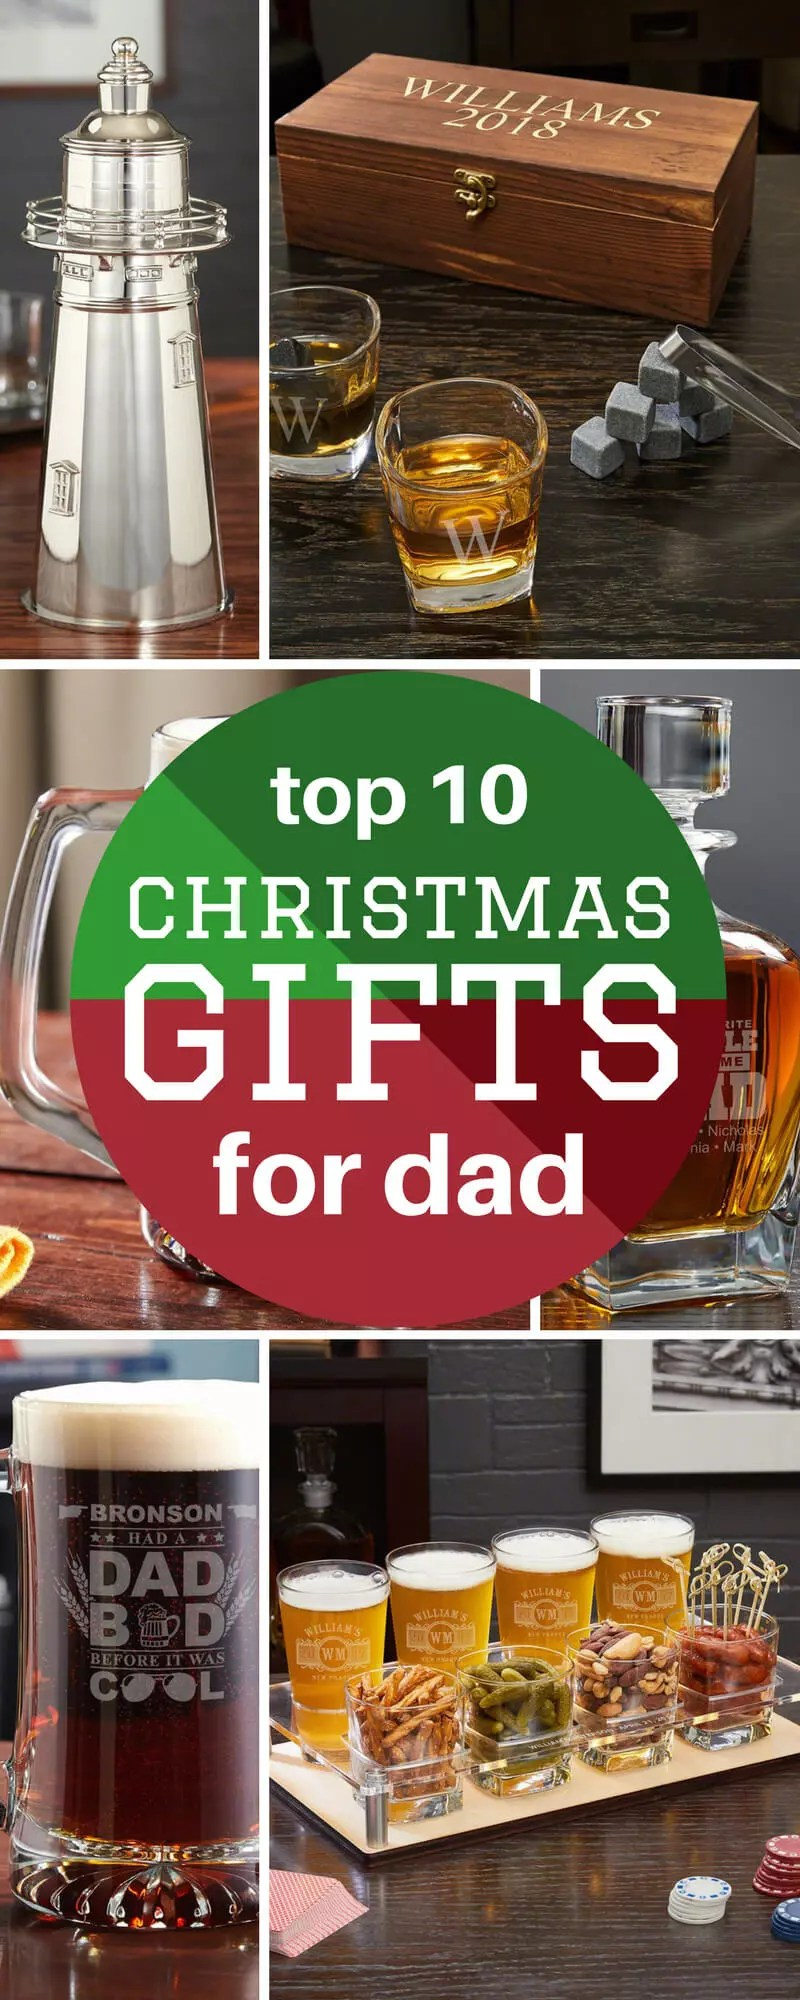 18 Best Gifts For Fathers For Christmas